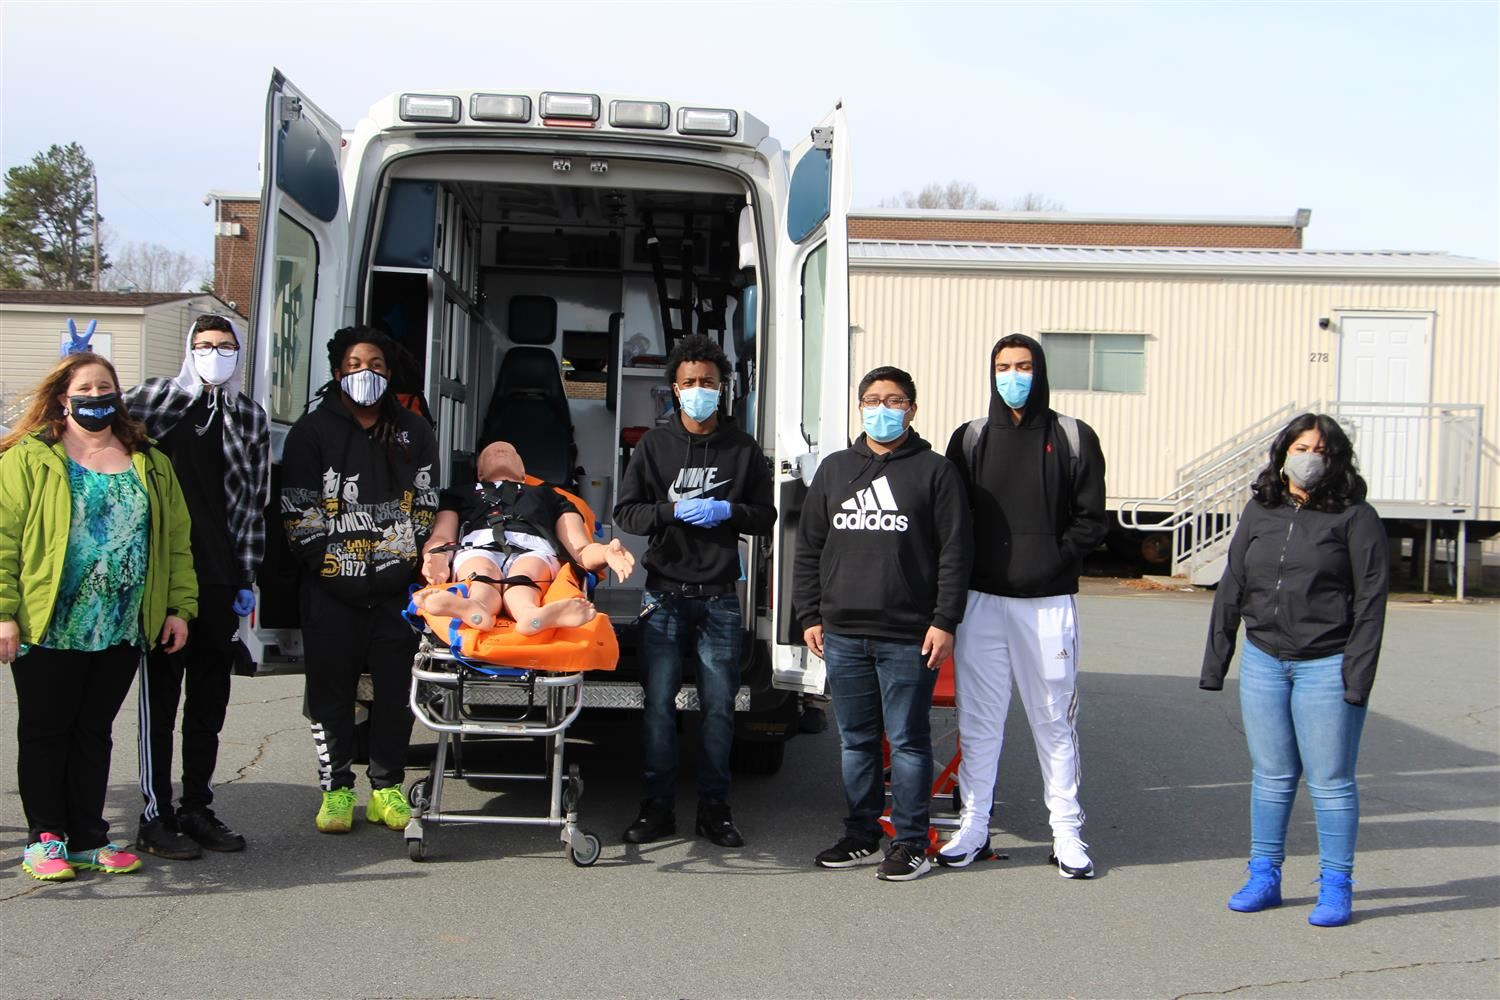 Hands-On Experience with an Ambulance for North Forsyth EMT Students